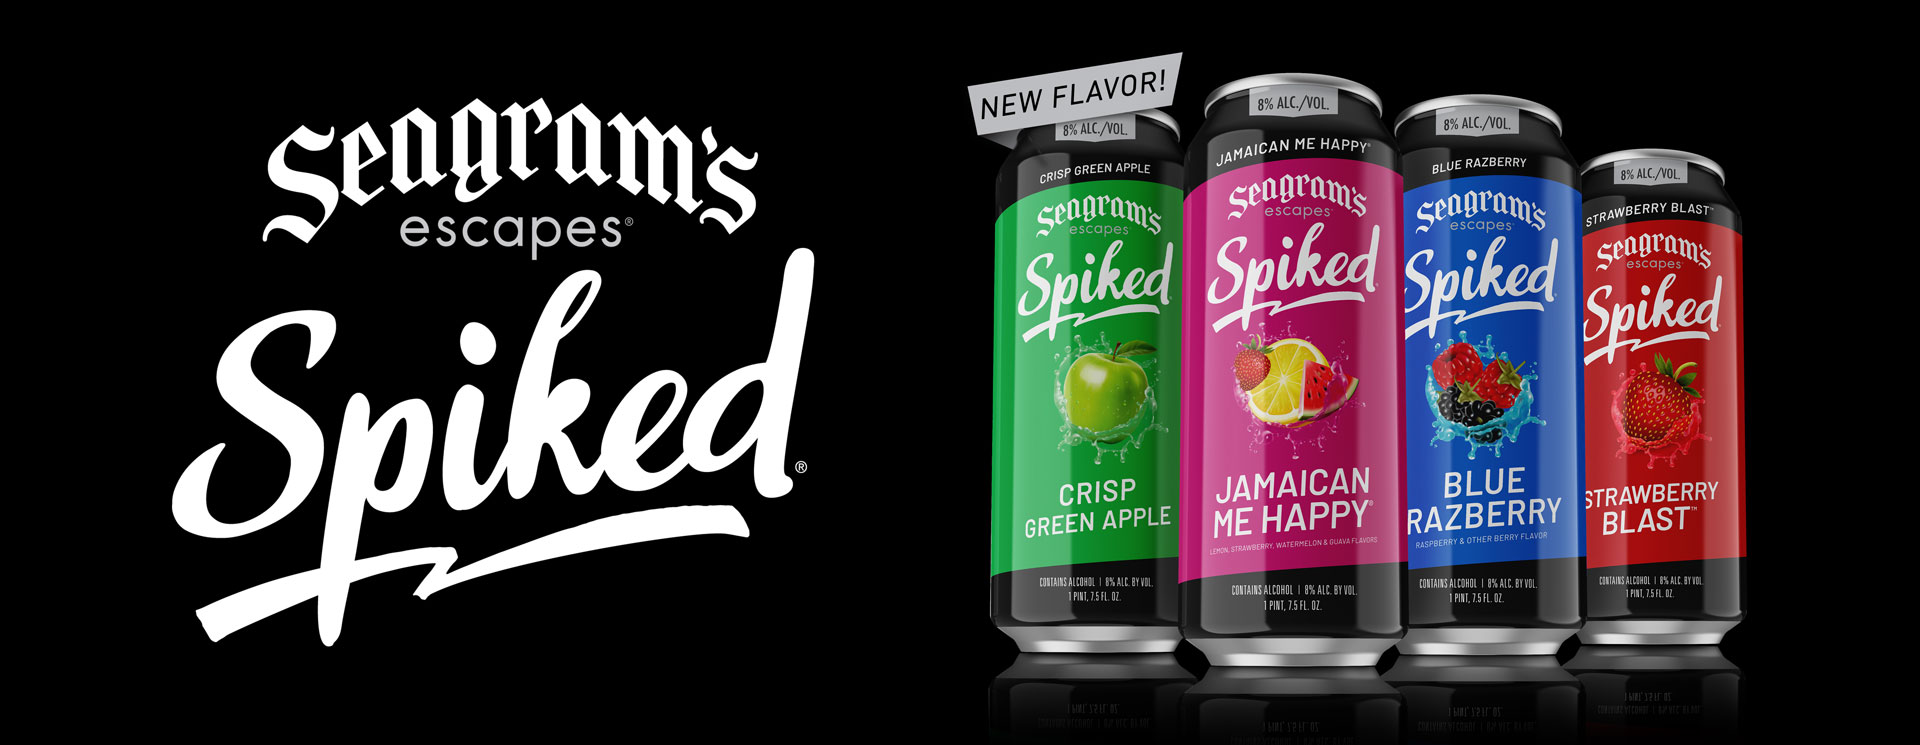 Image of four cans of Seagrams Escapes Spiked, in all four flavors